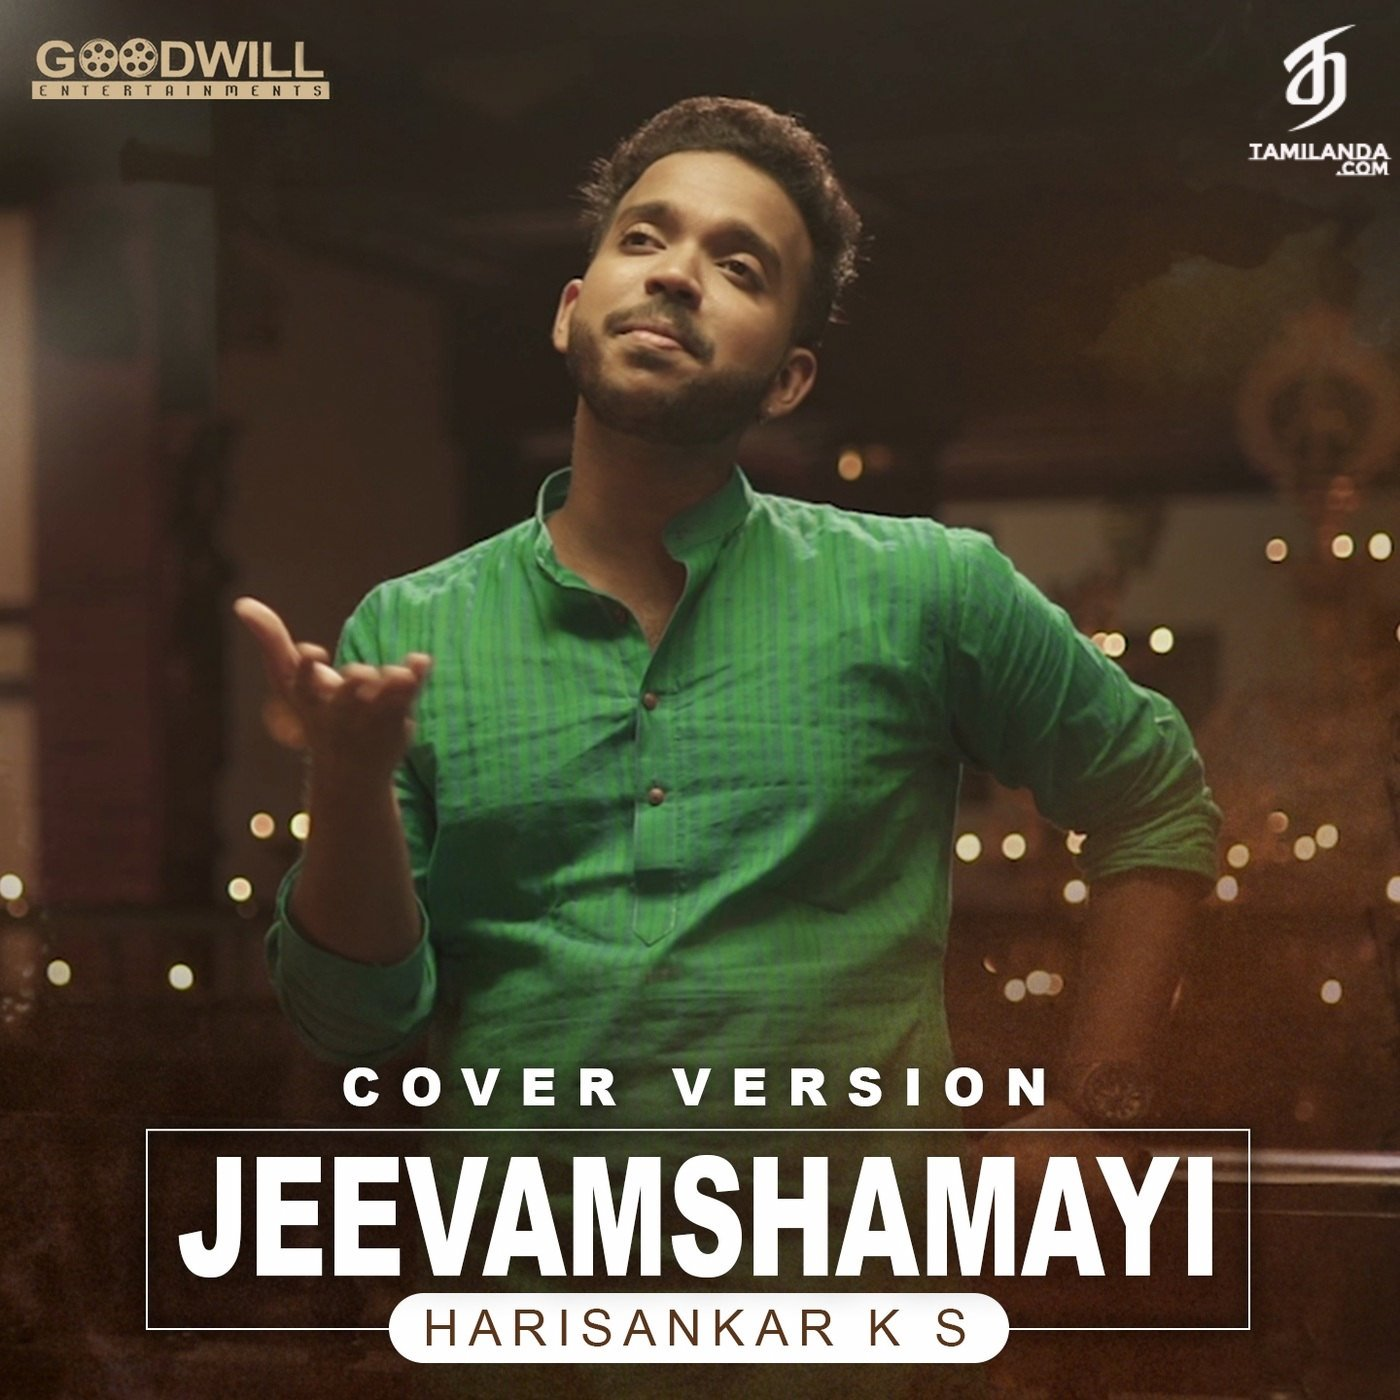 Jaavamshamayi (Cover Version) (Single) FLAC Song